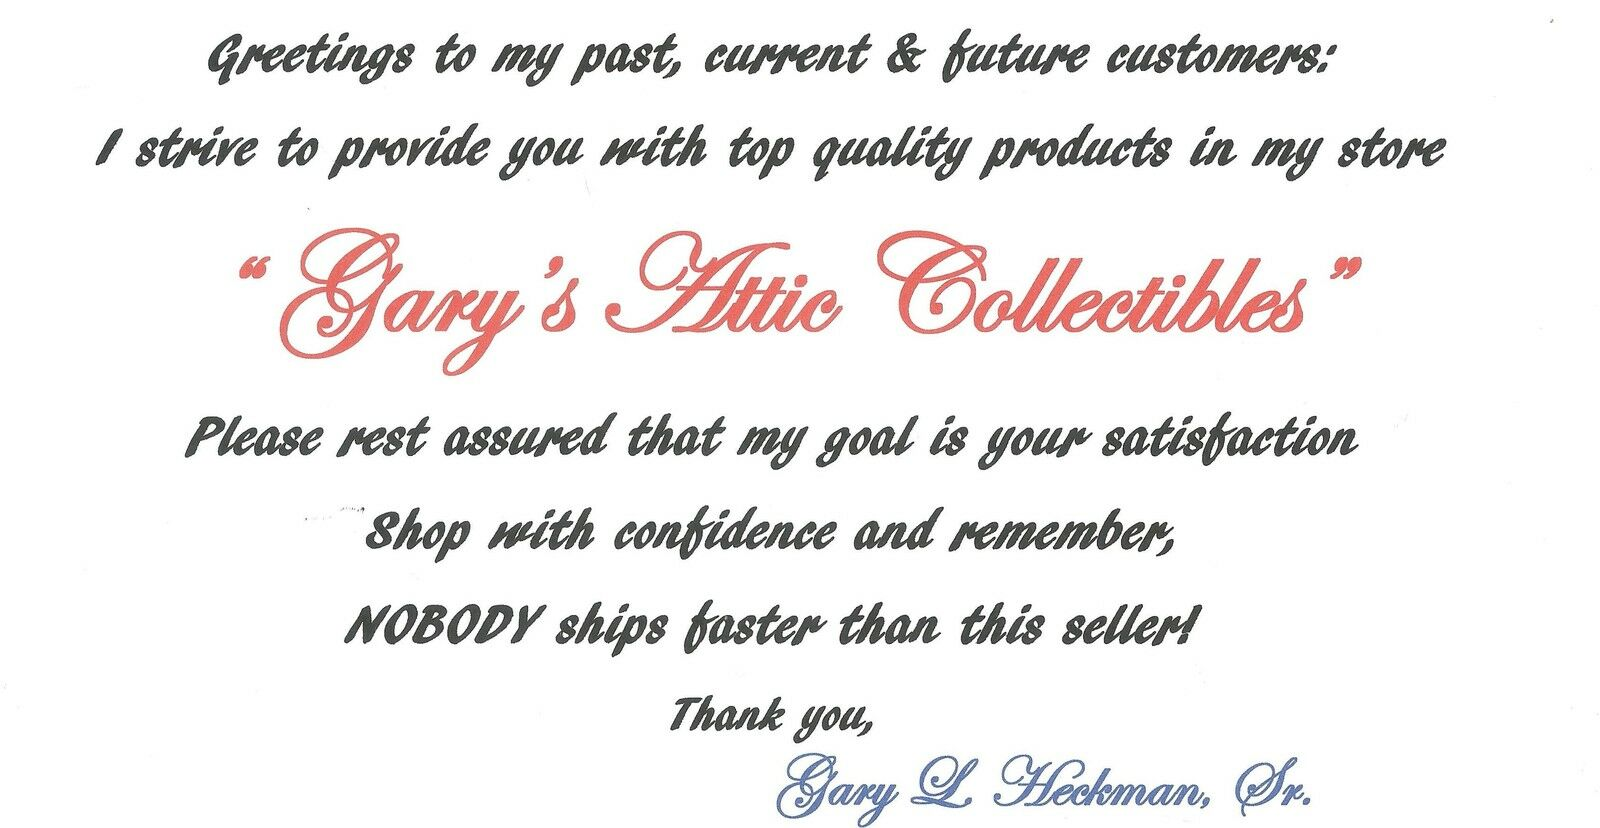 GARY'S ATTIC COLLECTIBLES